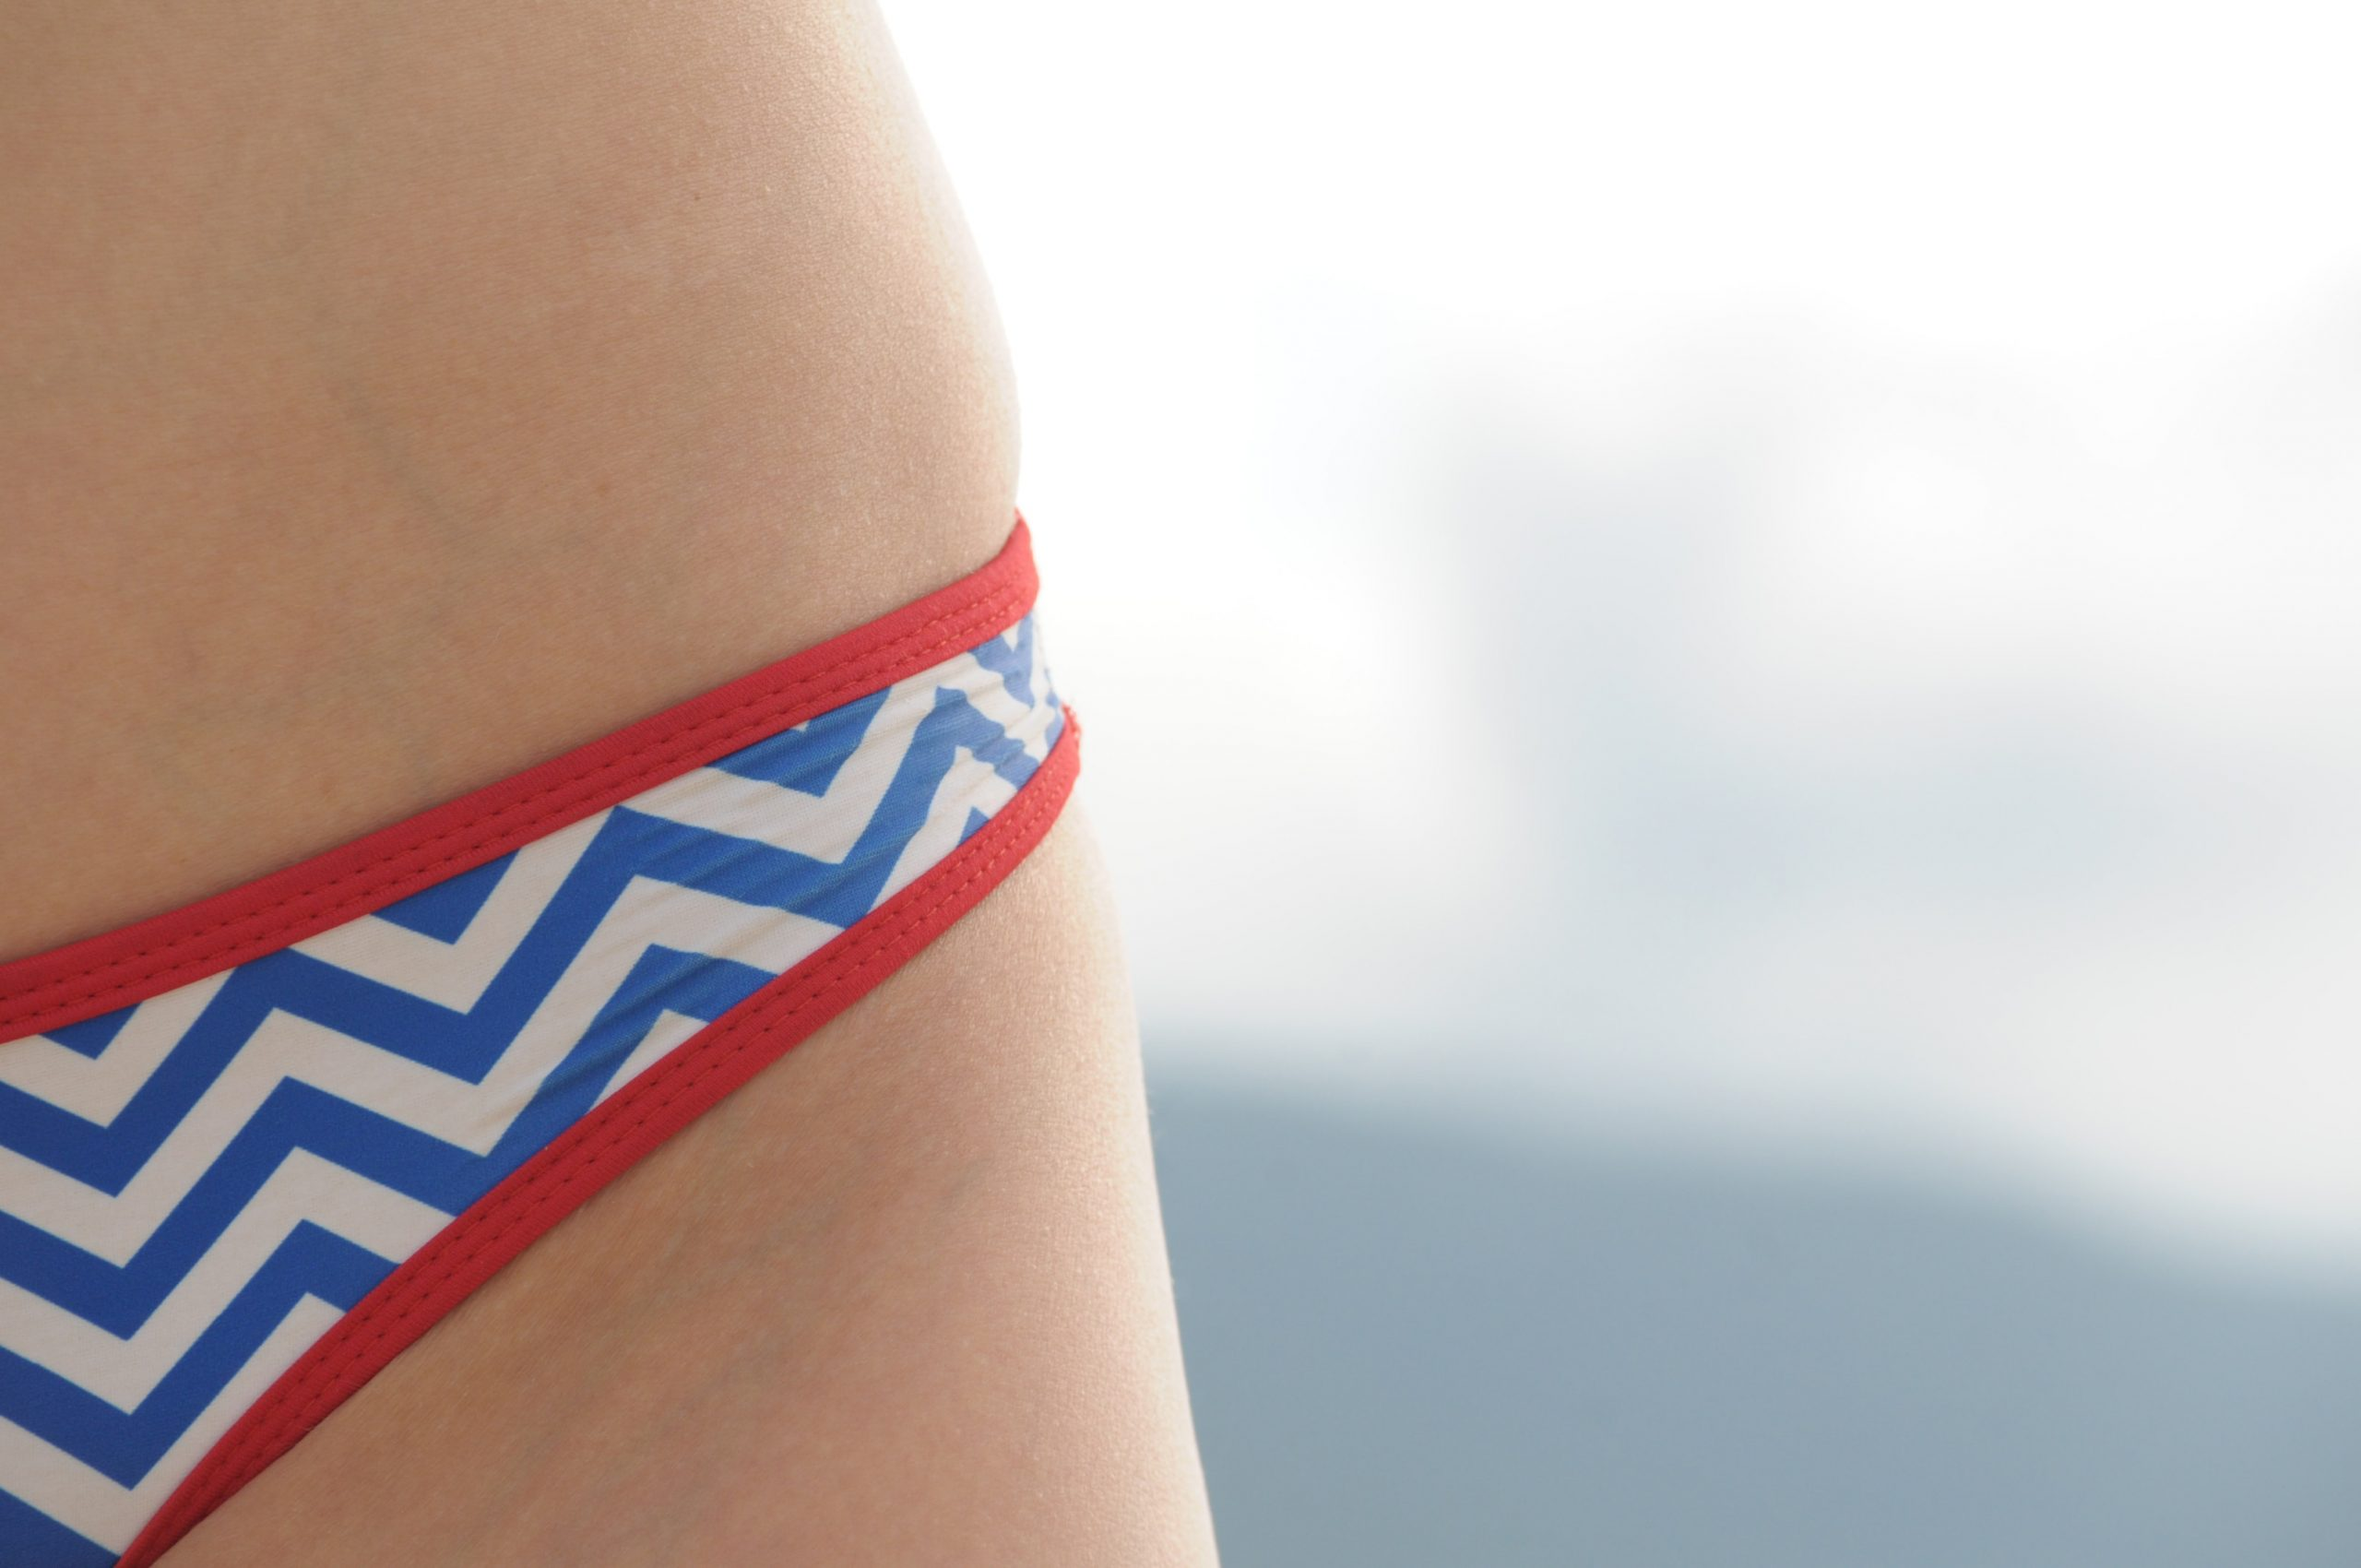 sustainable and organic underwear and panties